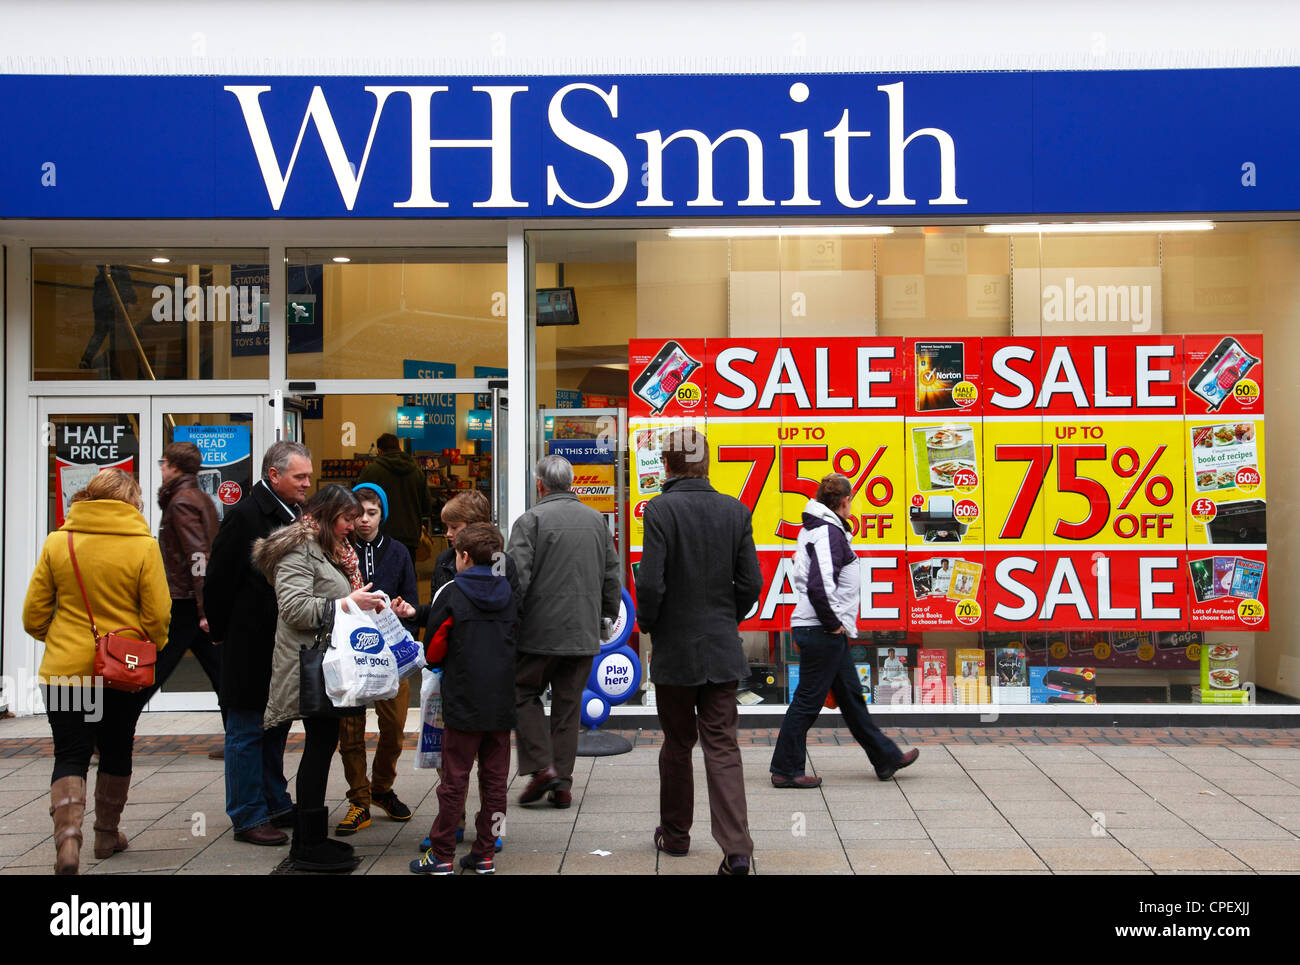 A WH Smith store in Nottingham, England, U.K. - Stock Image